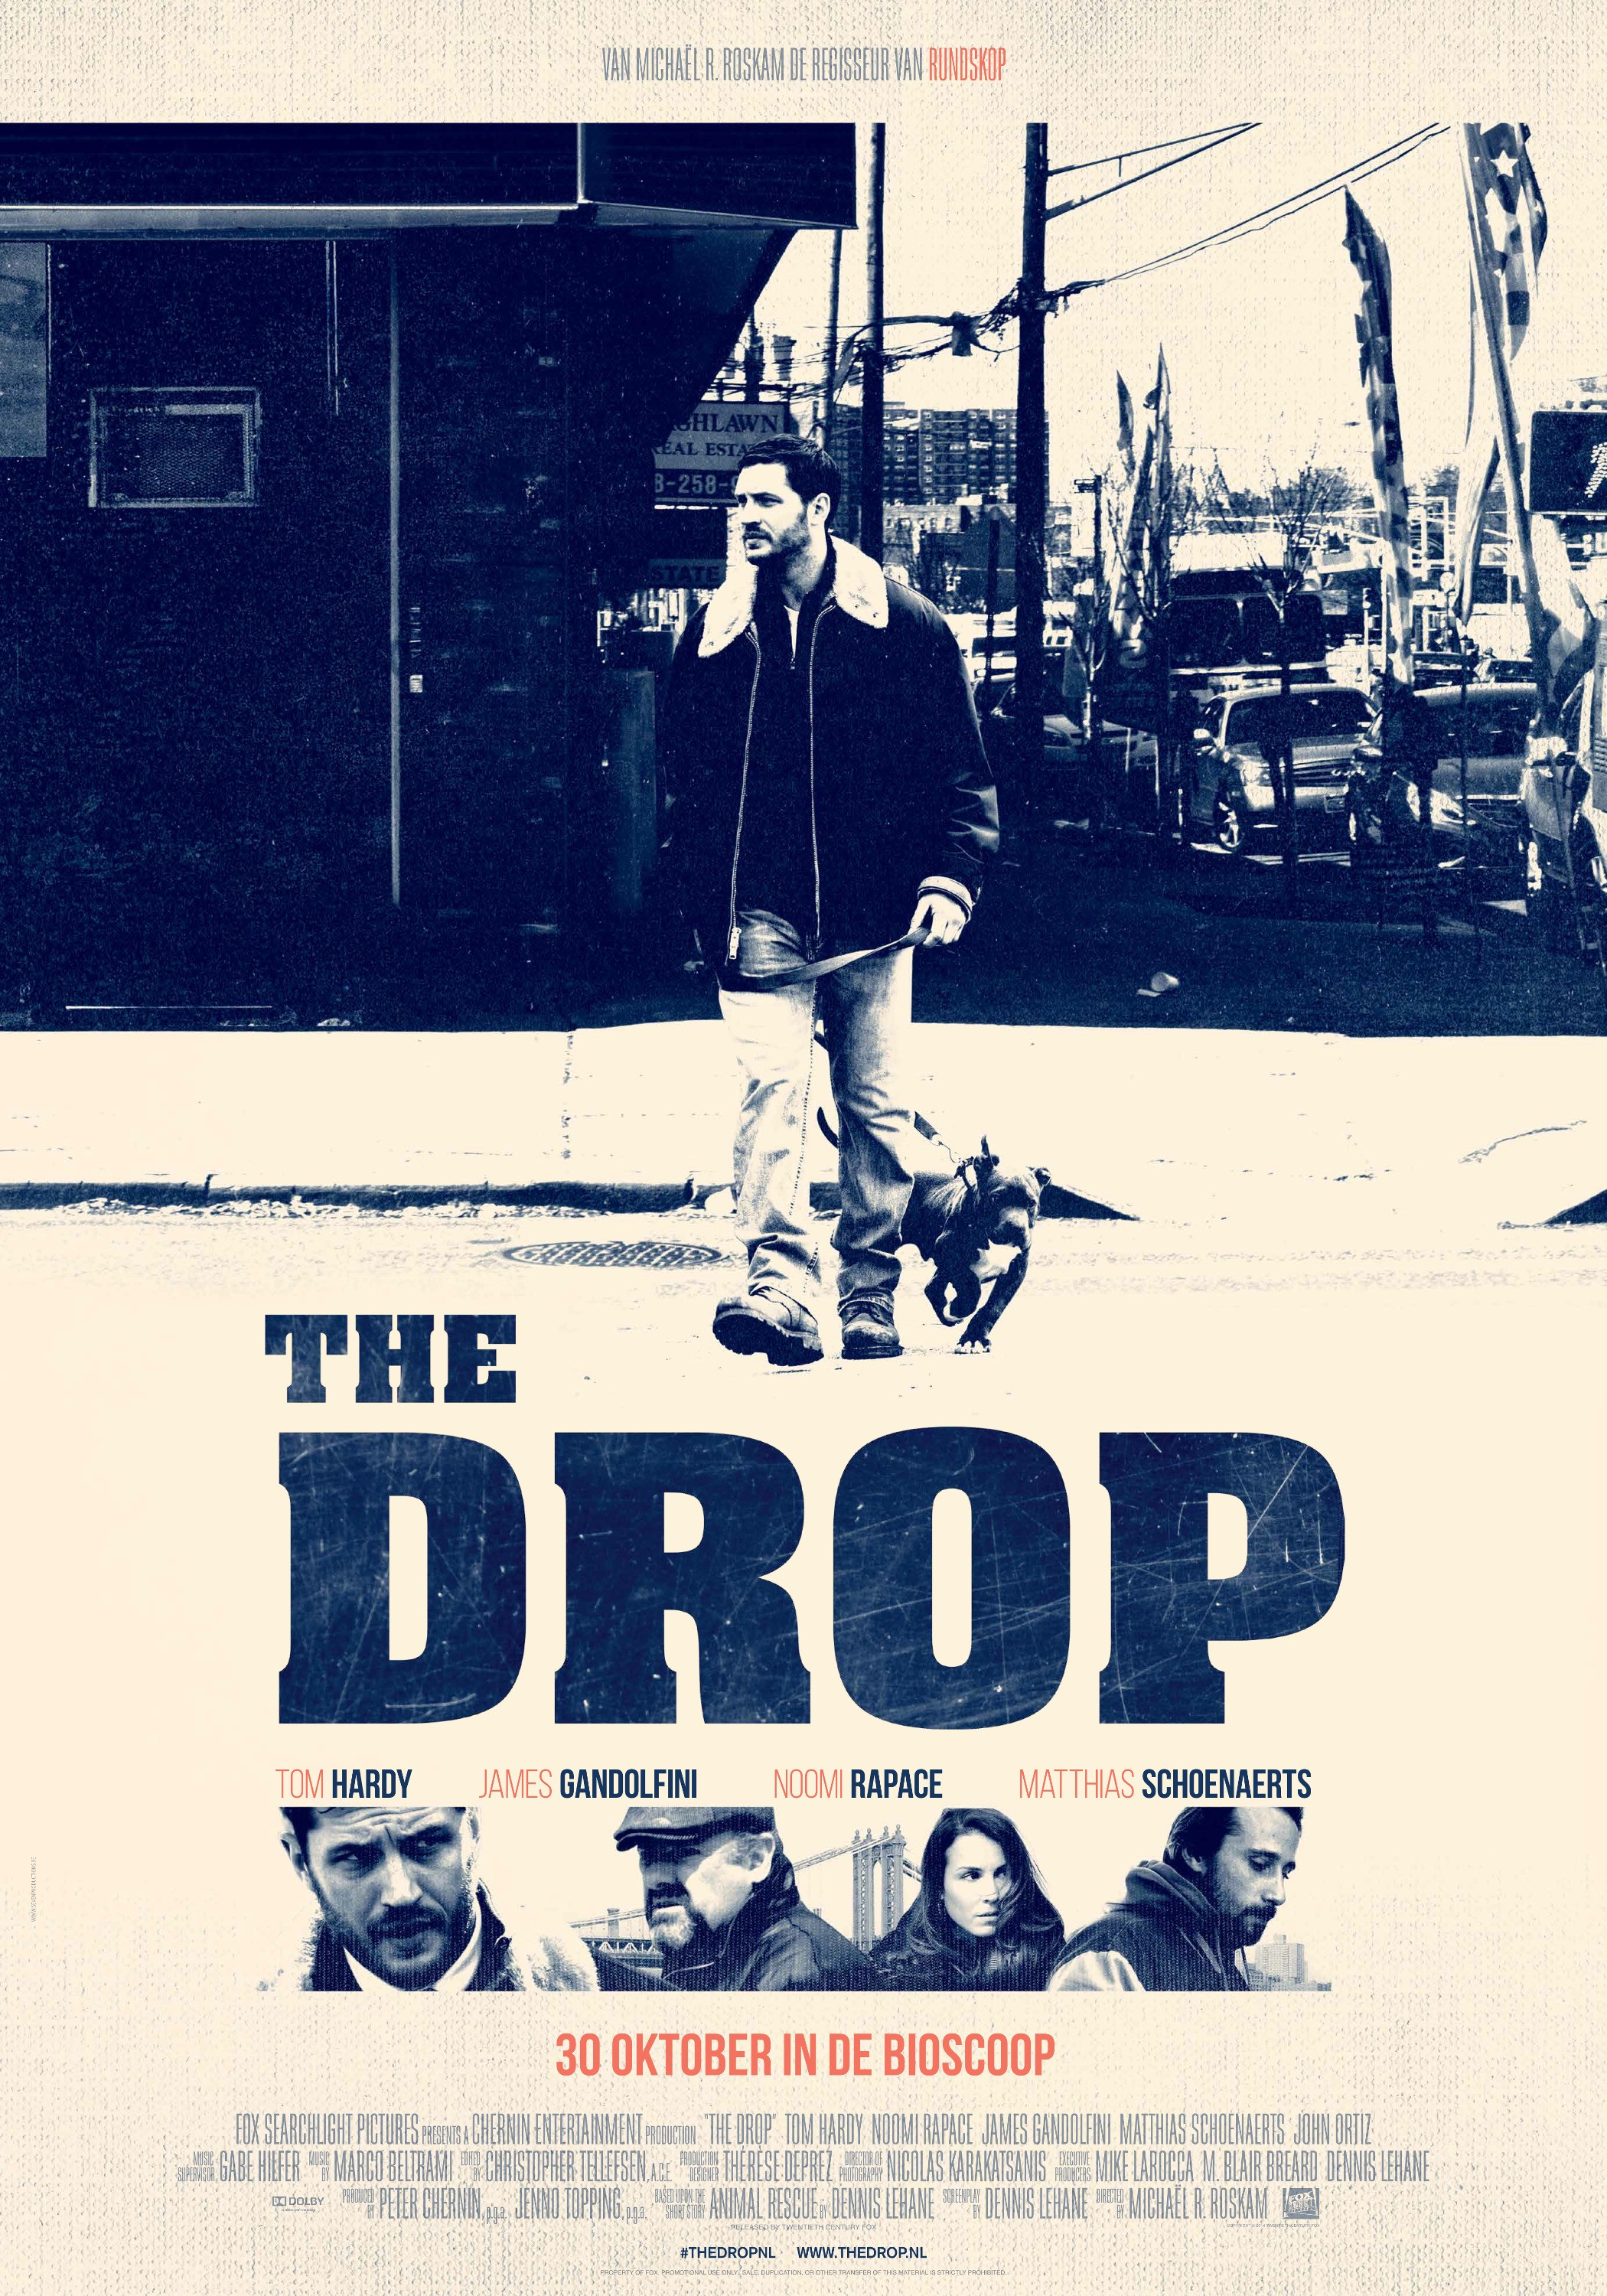 The Drop-Official Poster Banner PROMO XXLG-24JULHO2014